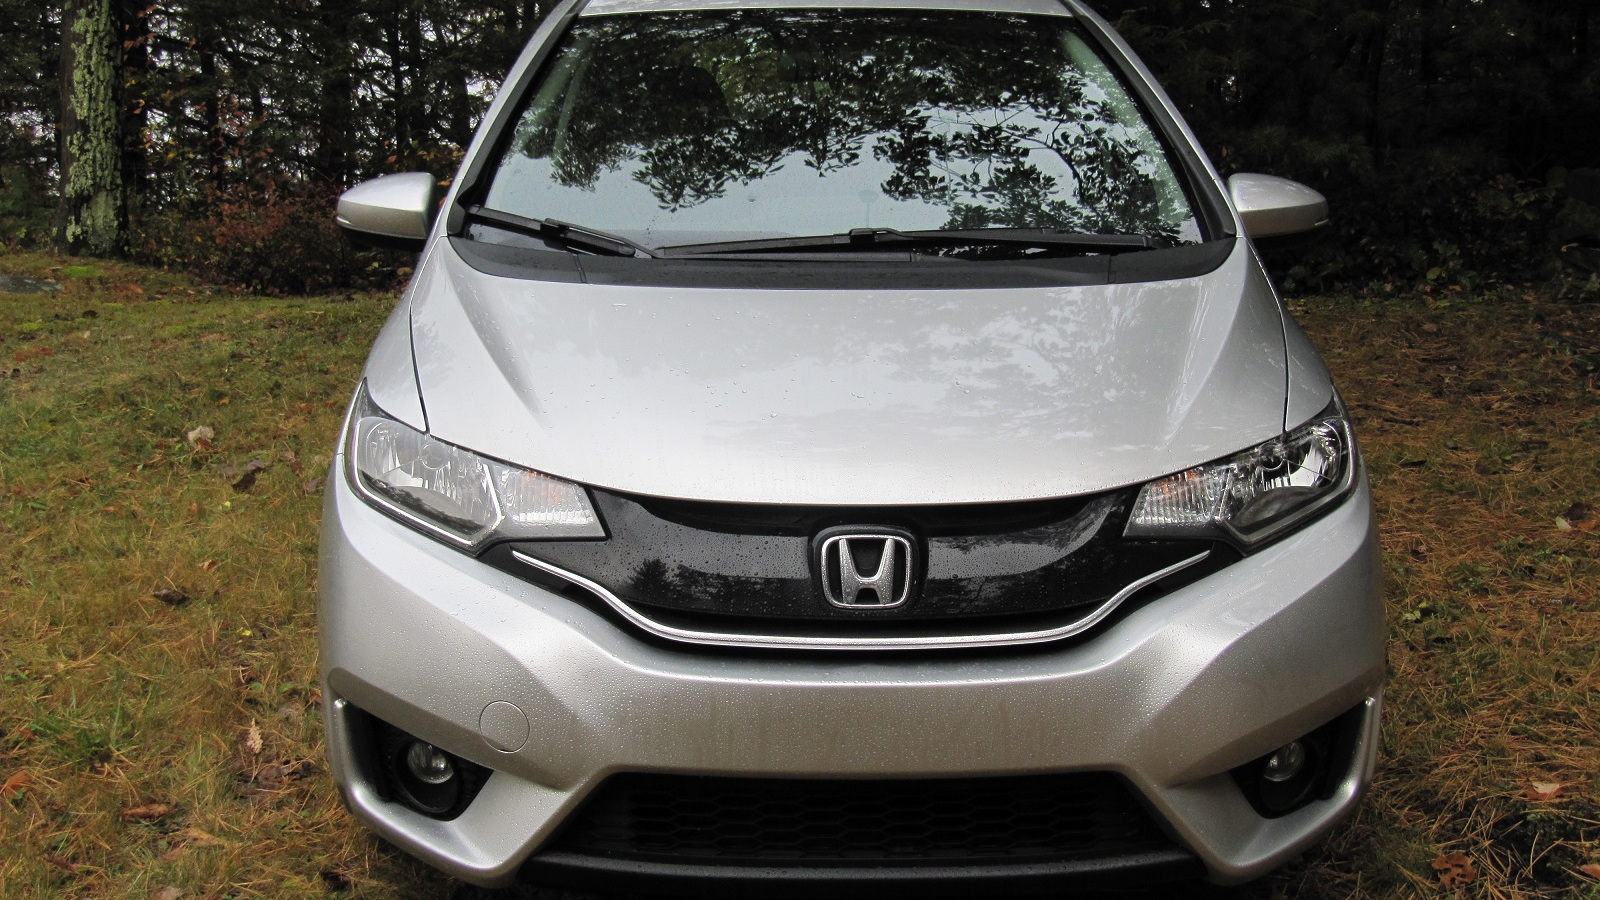 hight resolution of 2015 honda fit ex l navi catskill mountains ny oct 2014